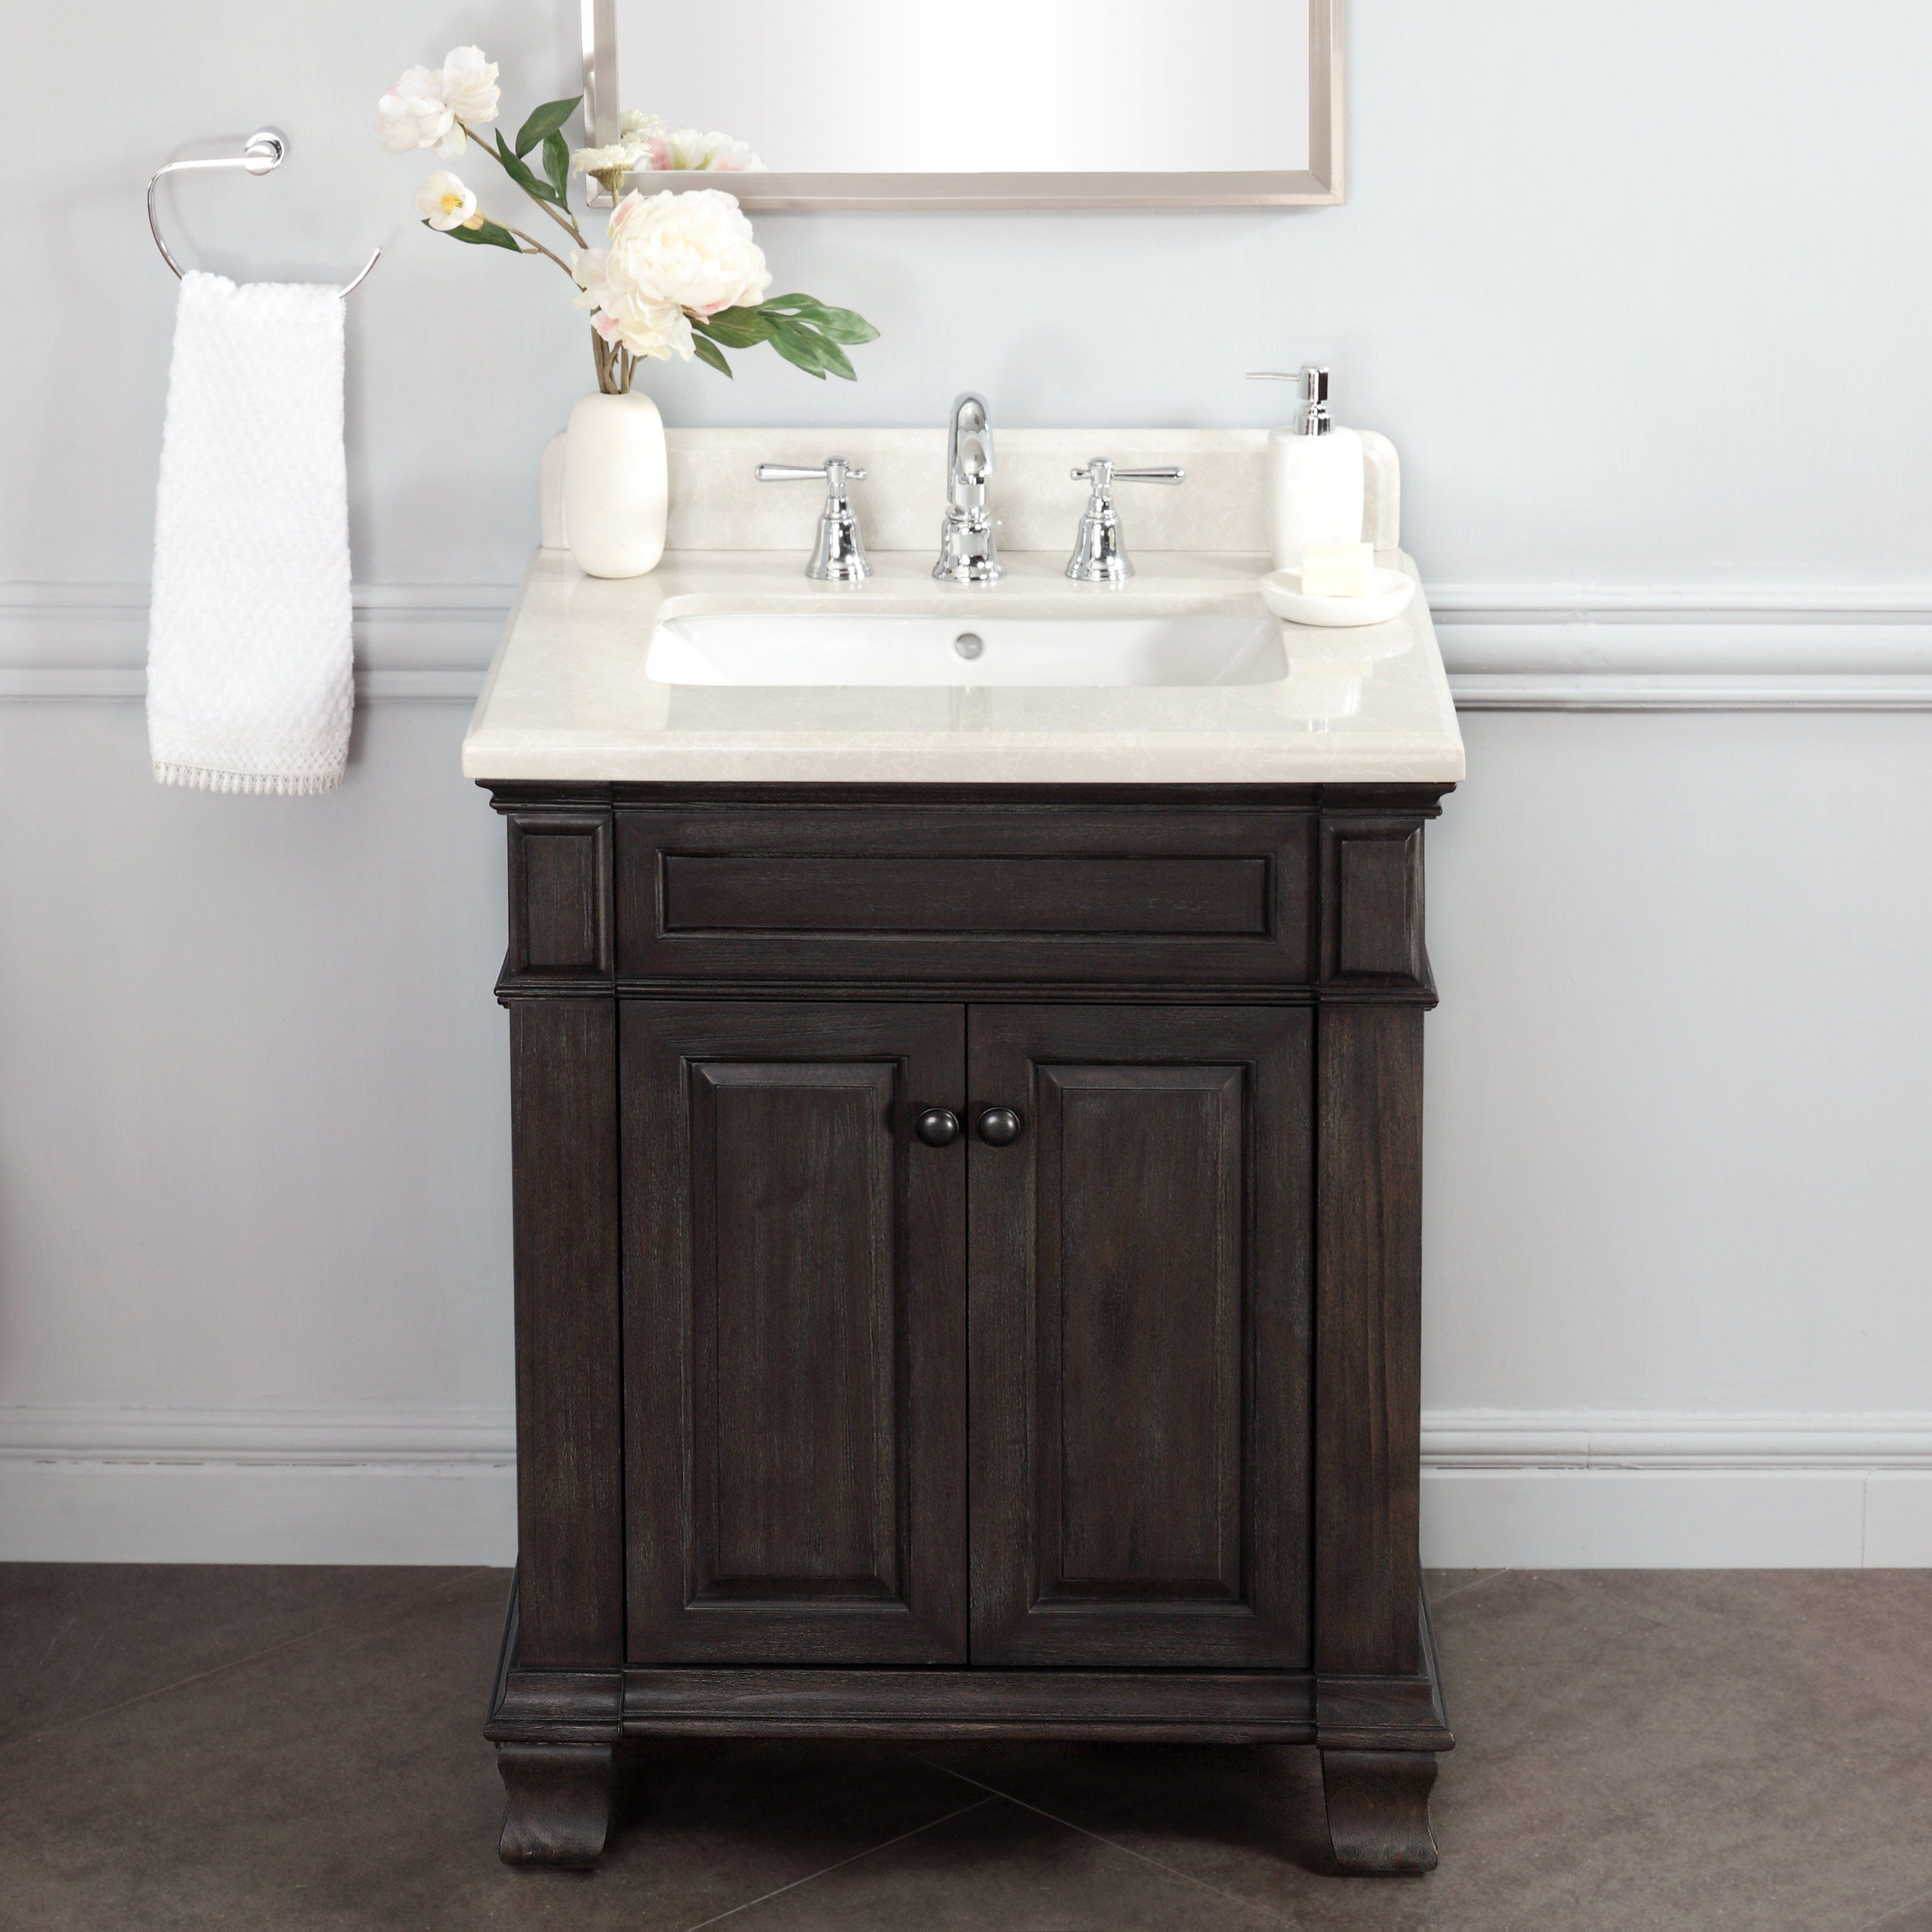 Have To Have It Lanza Wf6953 28 Kingsley 28 In Single Bathroom